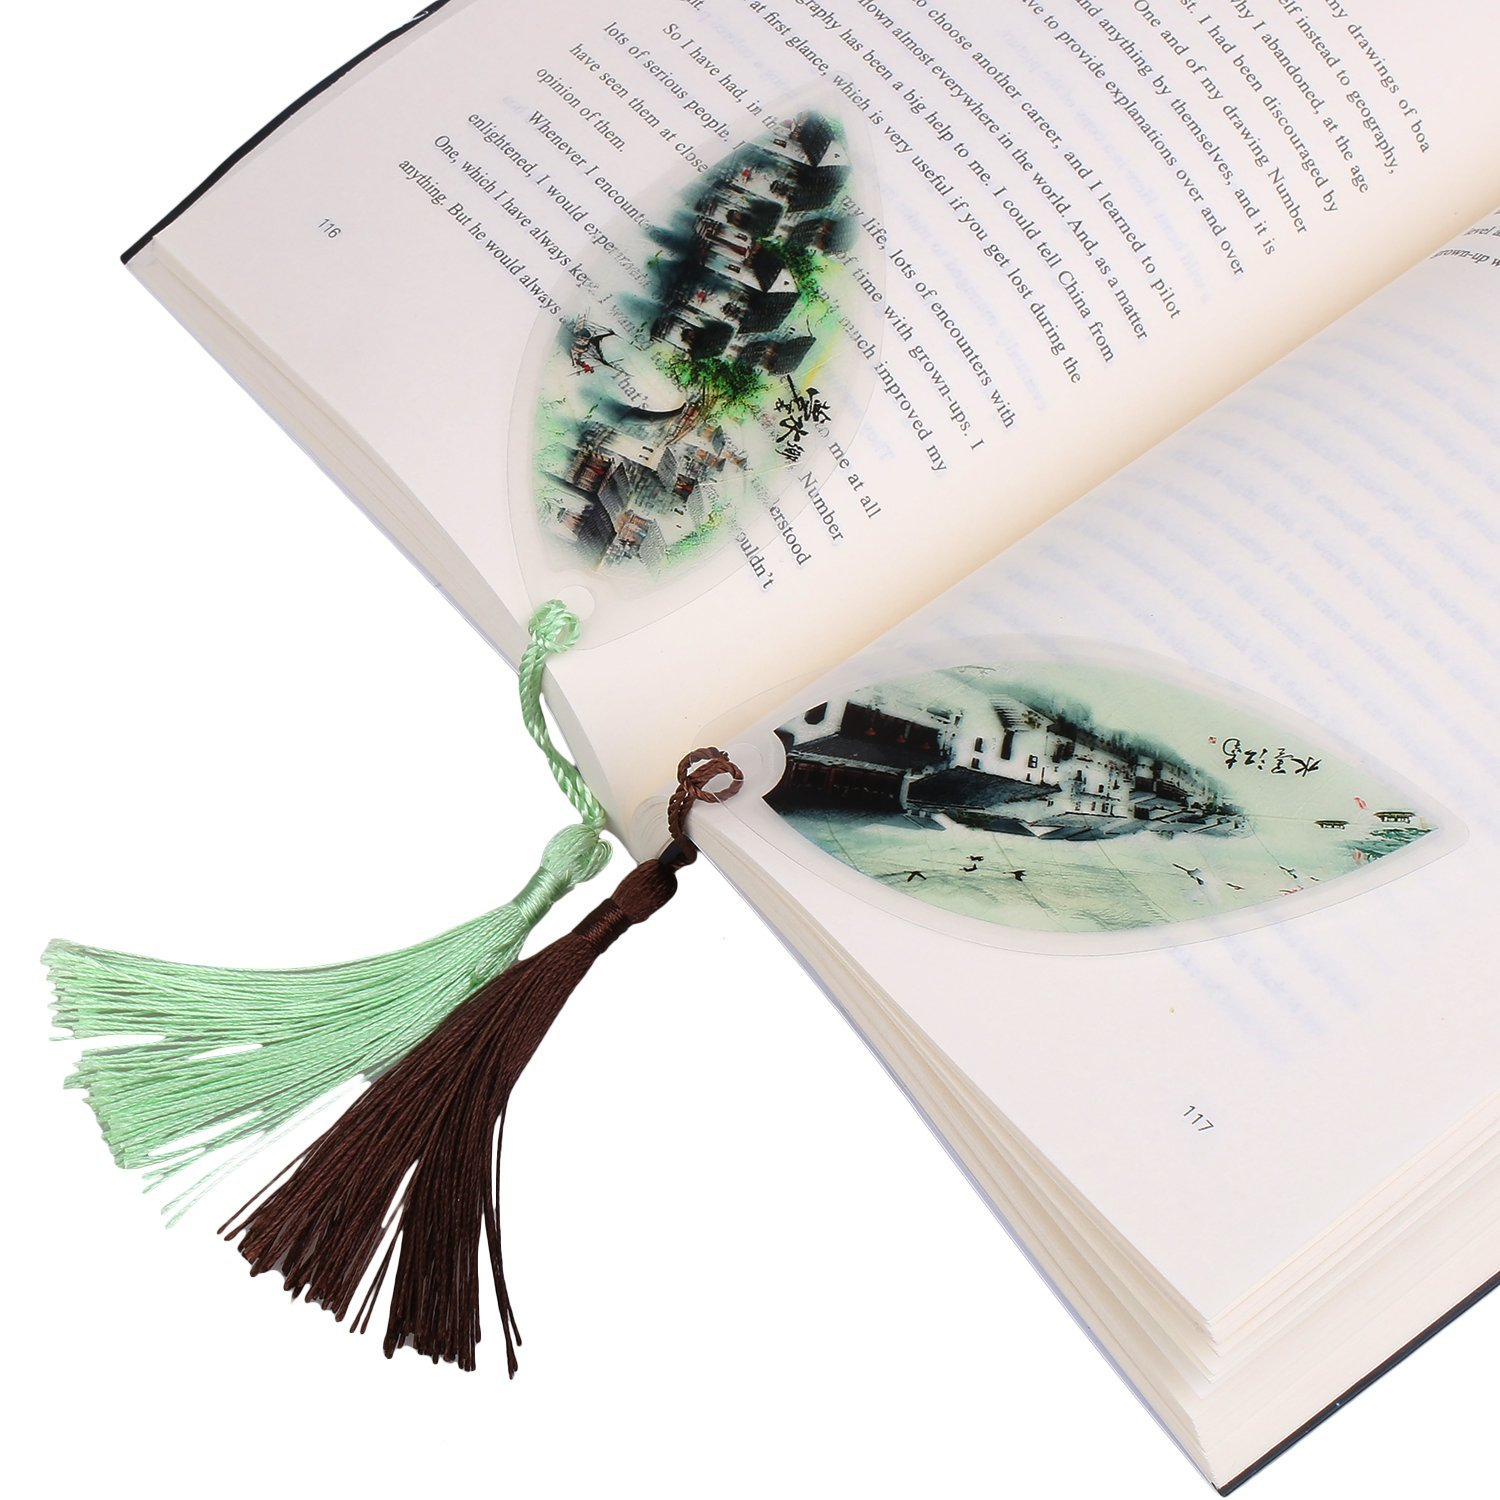 GTHER 2PCS Leaf Bookmarks Handmade Natural Leaf Vein Bookmark Fancy Bookmark Chinese Bookmark for School Office Study Art Decoration Creative Gift Business Gift Unique Gift, Town